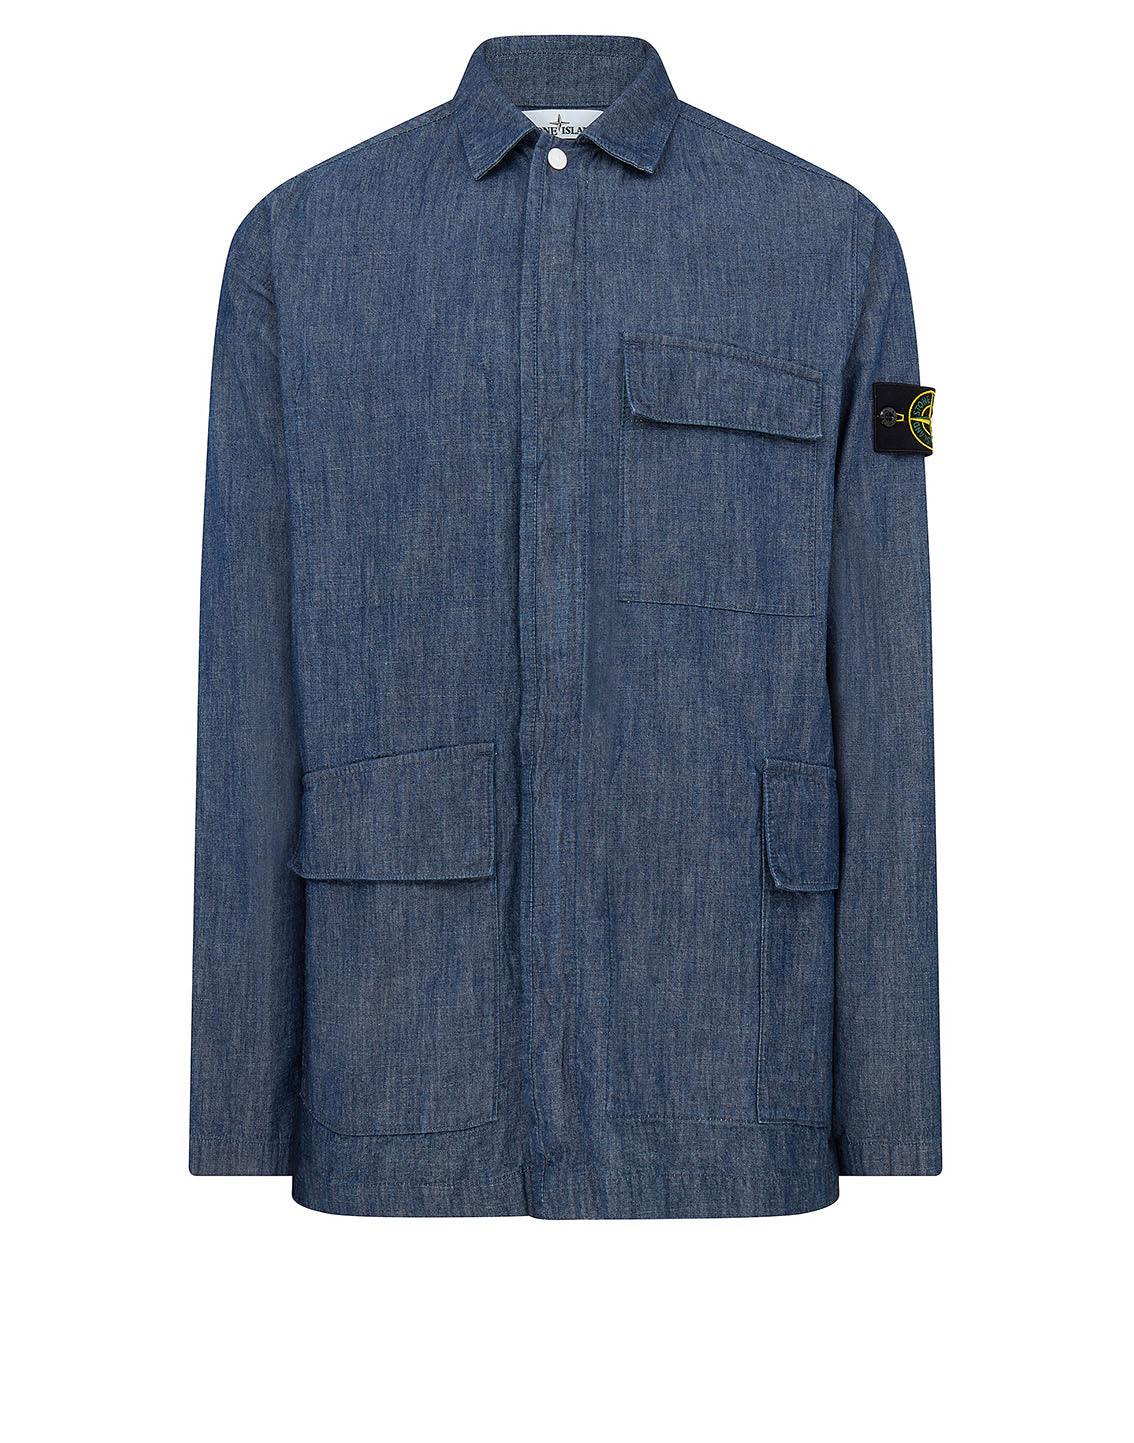 11307 CHAMBRAY CANVAS Overshirt in Blue